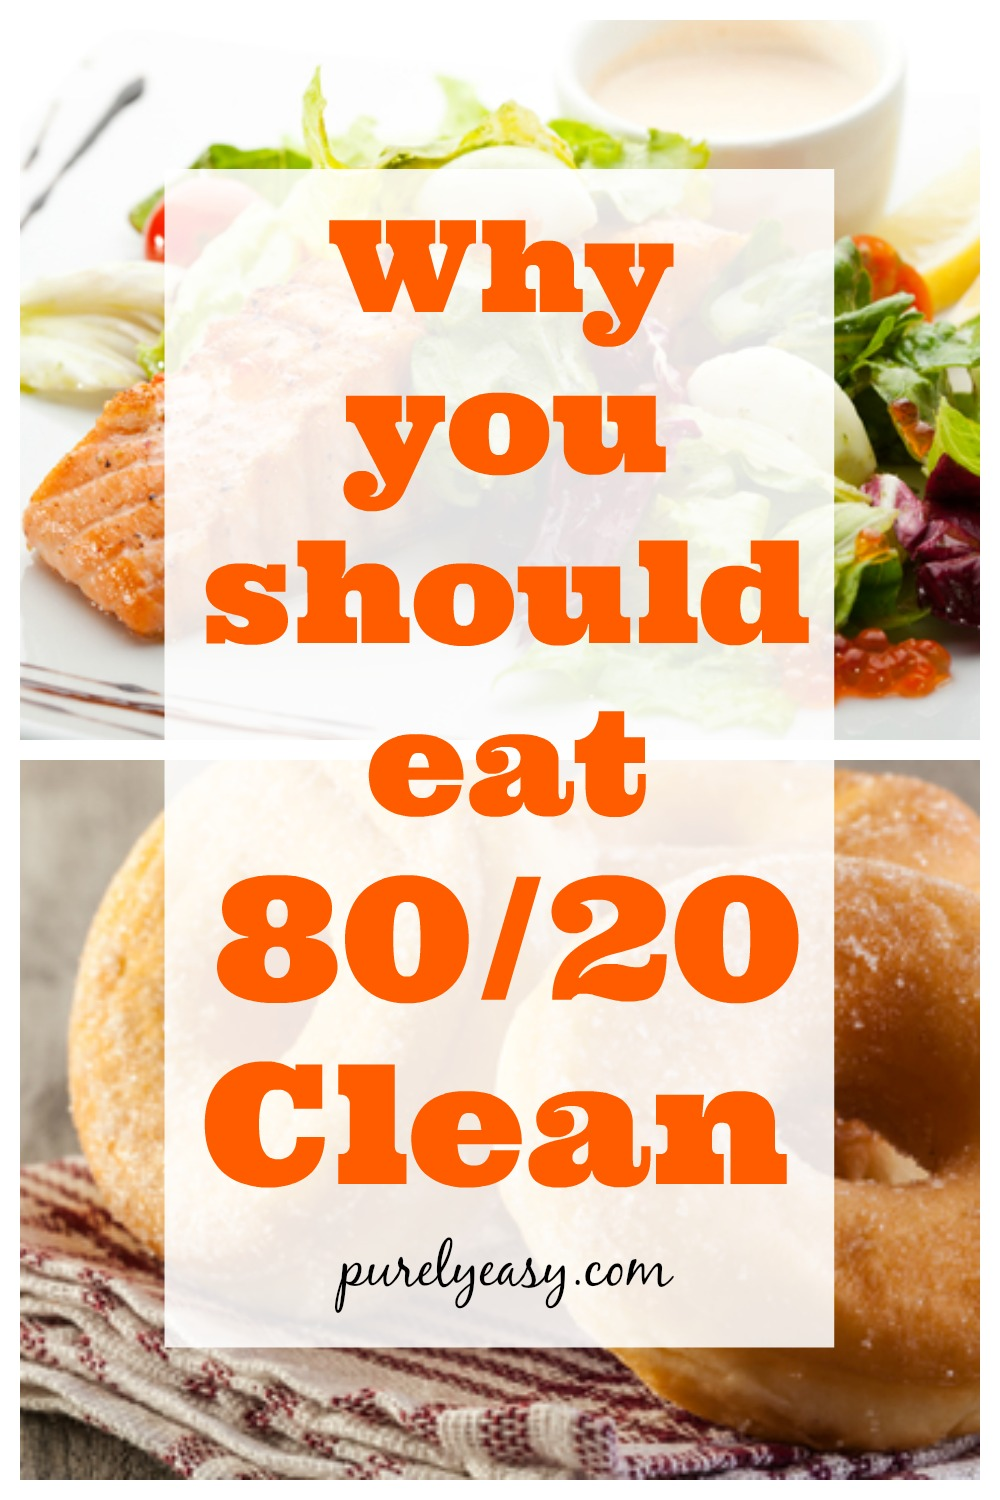 80/20 clean: the sensible way to eat